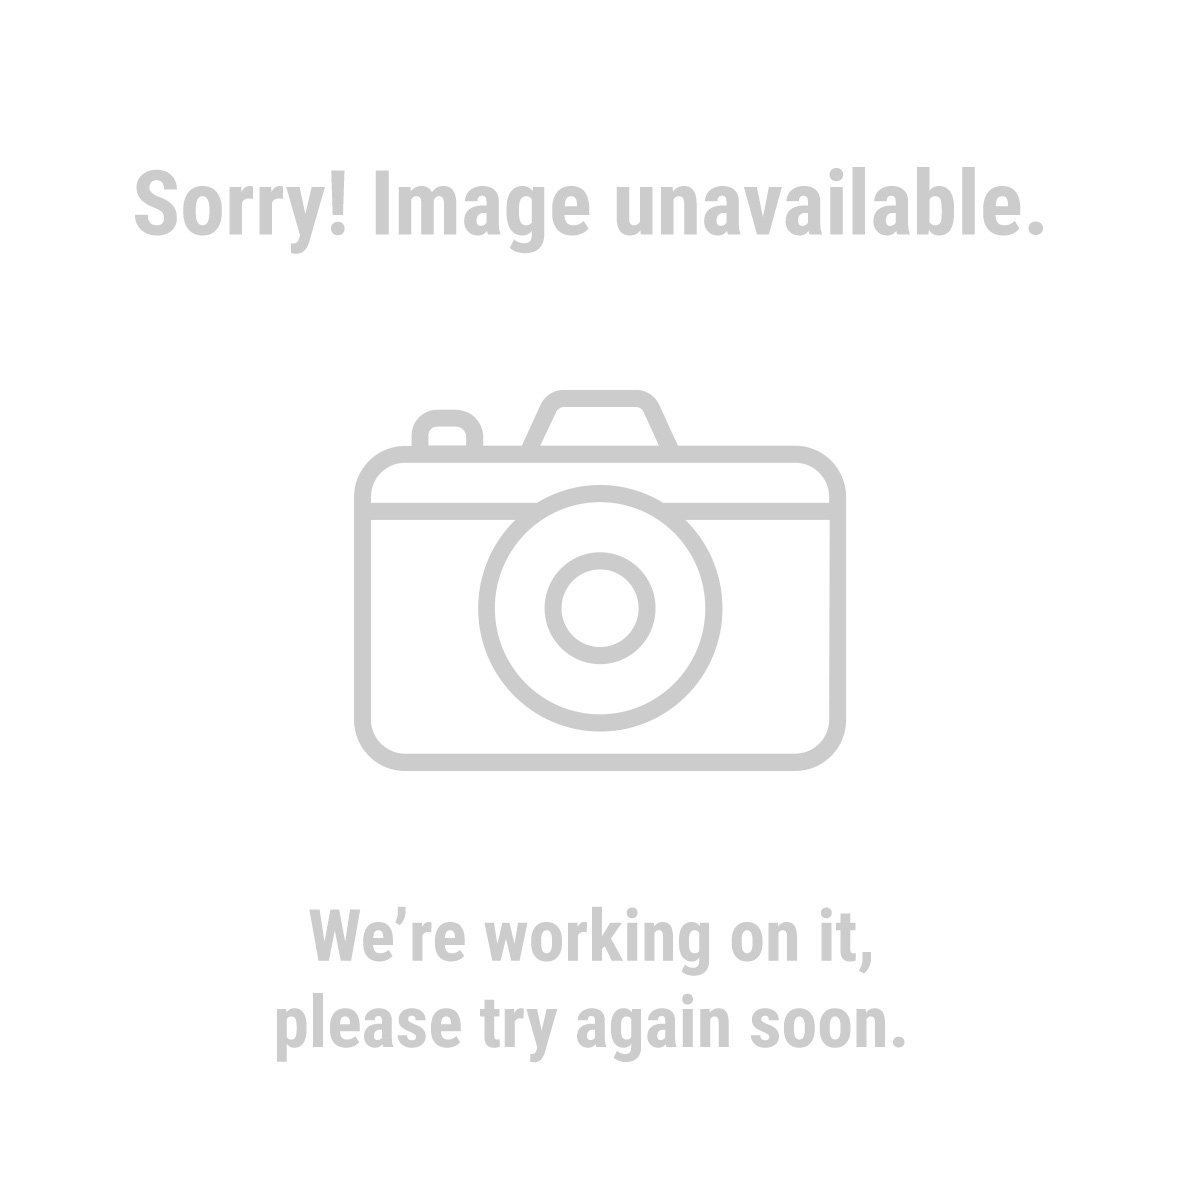 Chicago Electric Power Tools 66615 7 in. Volt Electronic Polisher/Sander with Digital RPM Display